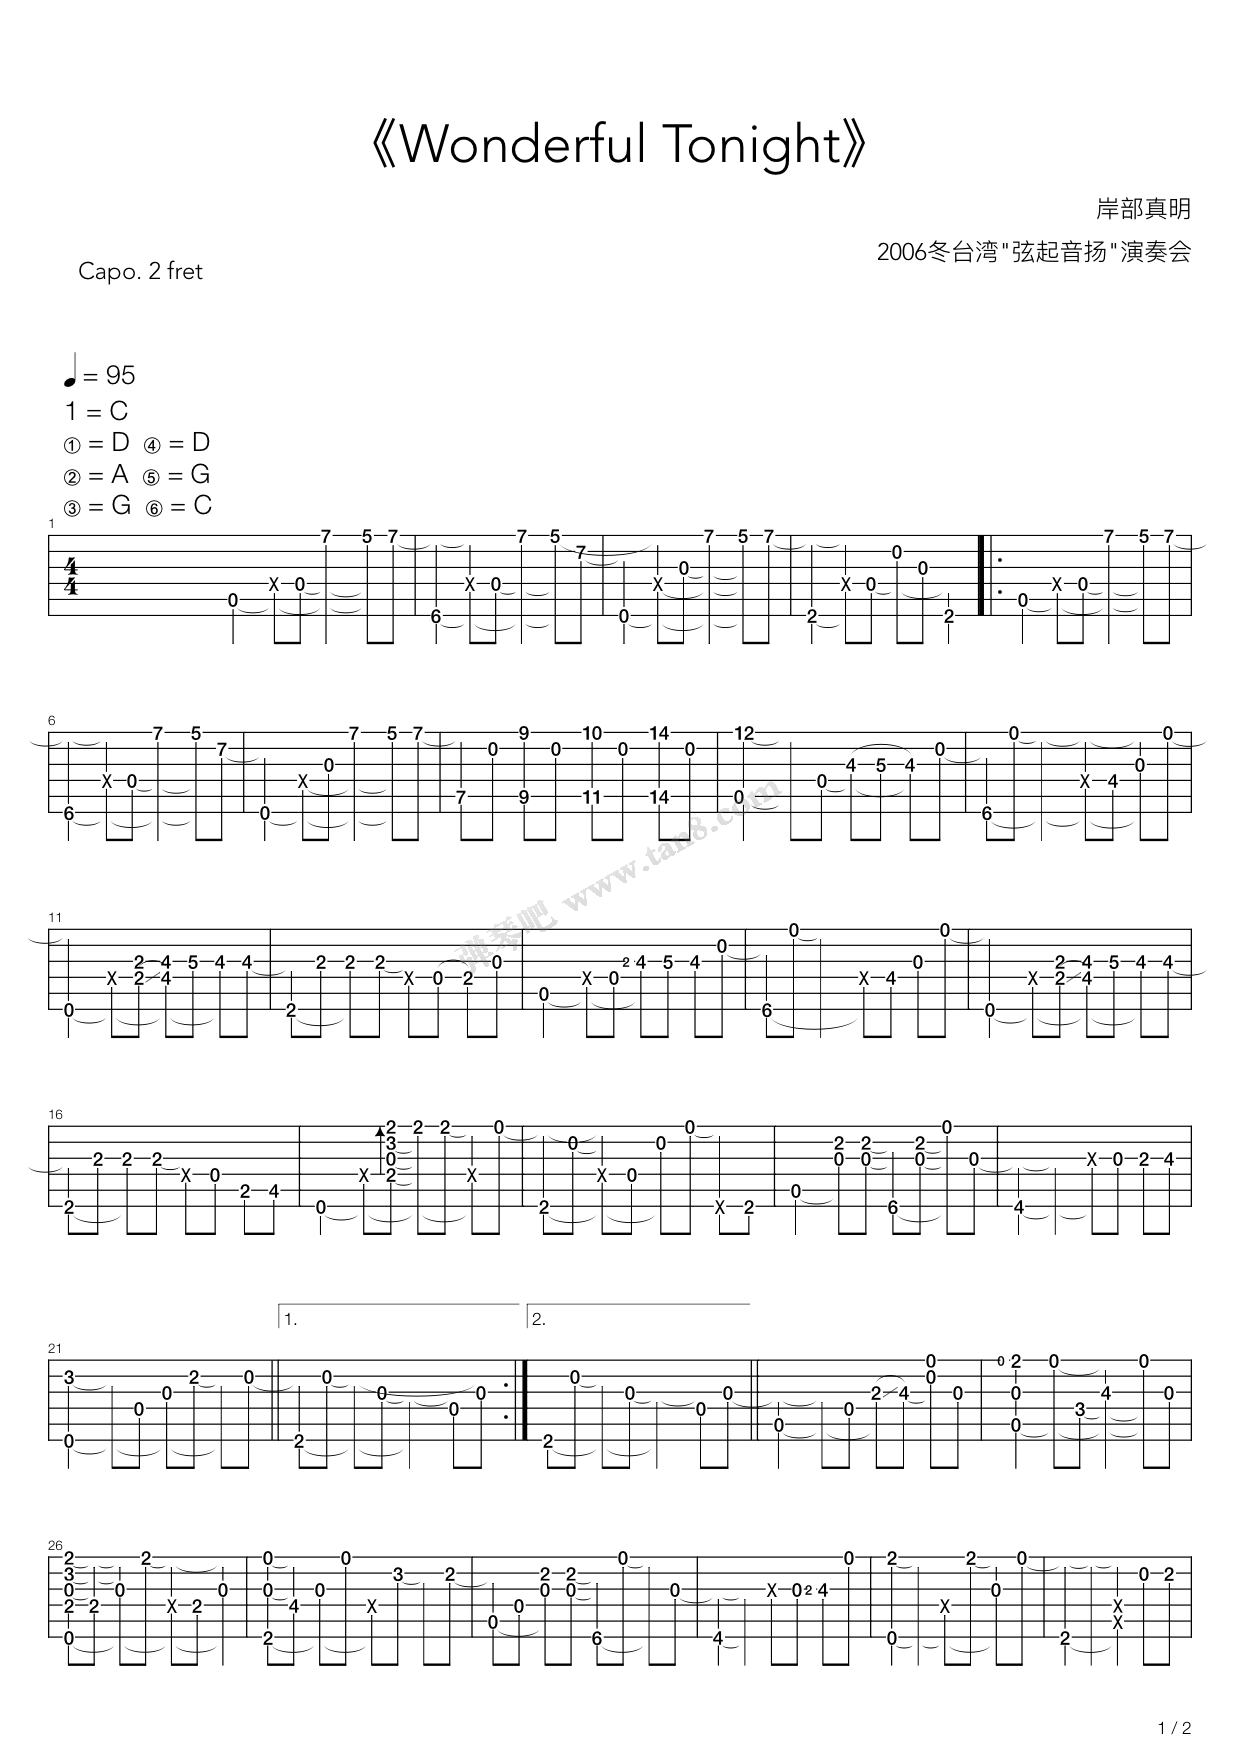 Wonderful Tonight by Masaaki Kishibe Guitar Tabs Chords